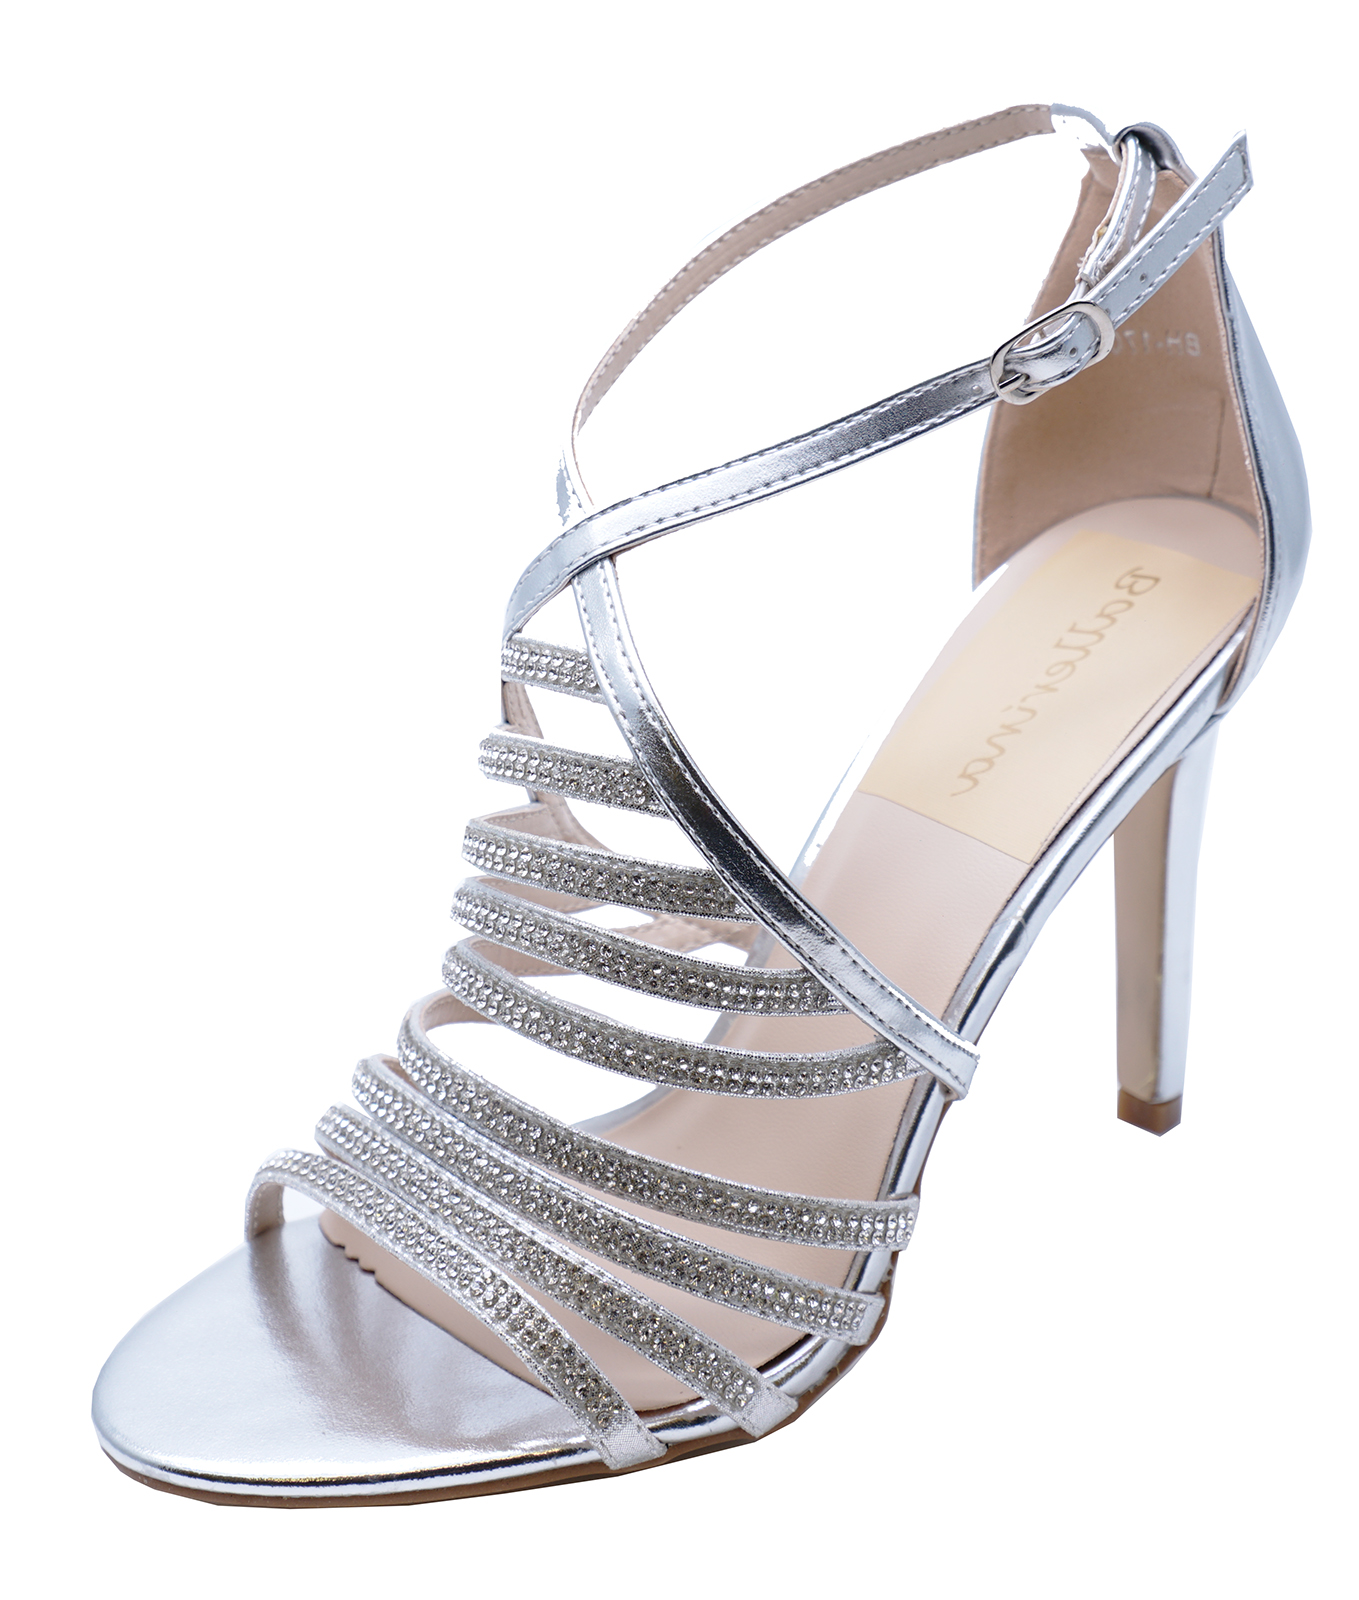 43ba53d4e6b7 Sentinel WOMENS SILVER BRIDESMAID BRIDE WEDDING BRIDAL DIAMANTE SANDALS  SHOES UK 3-7